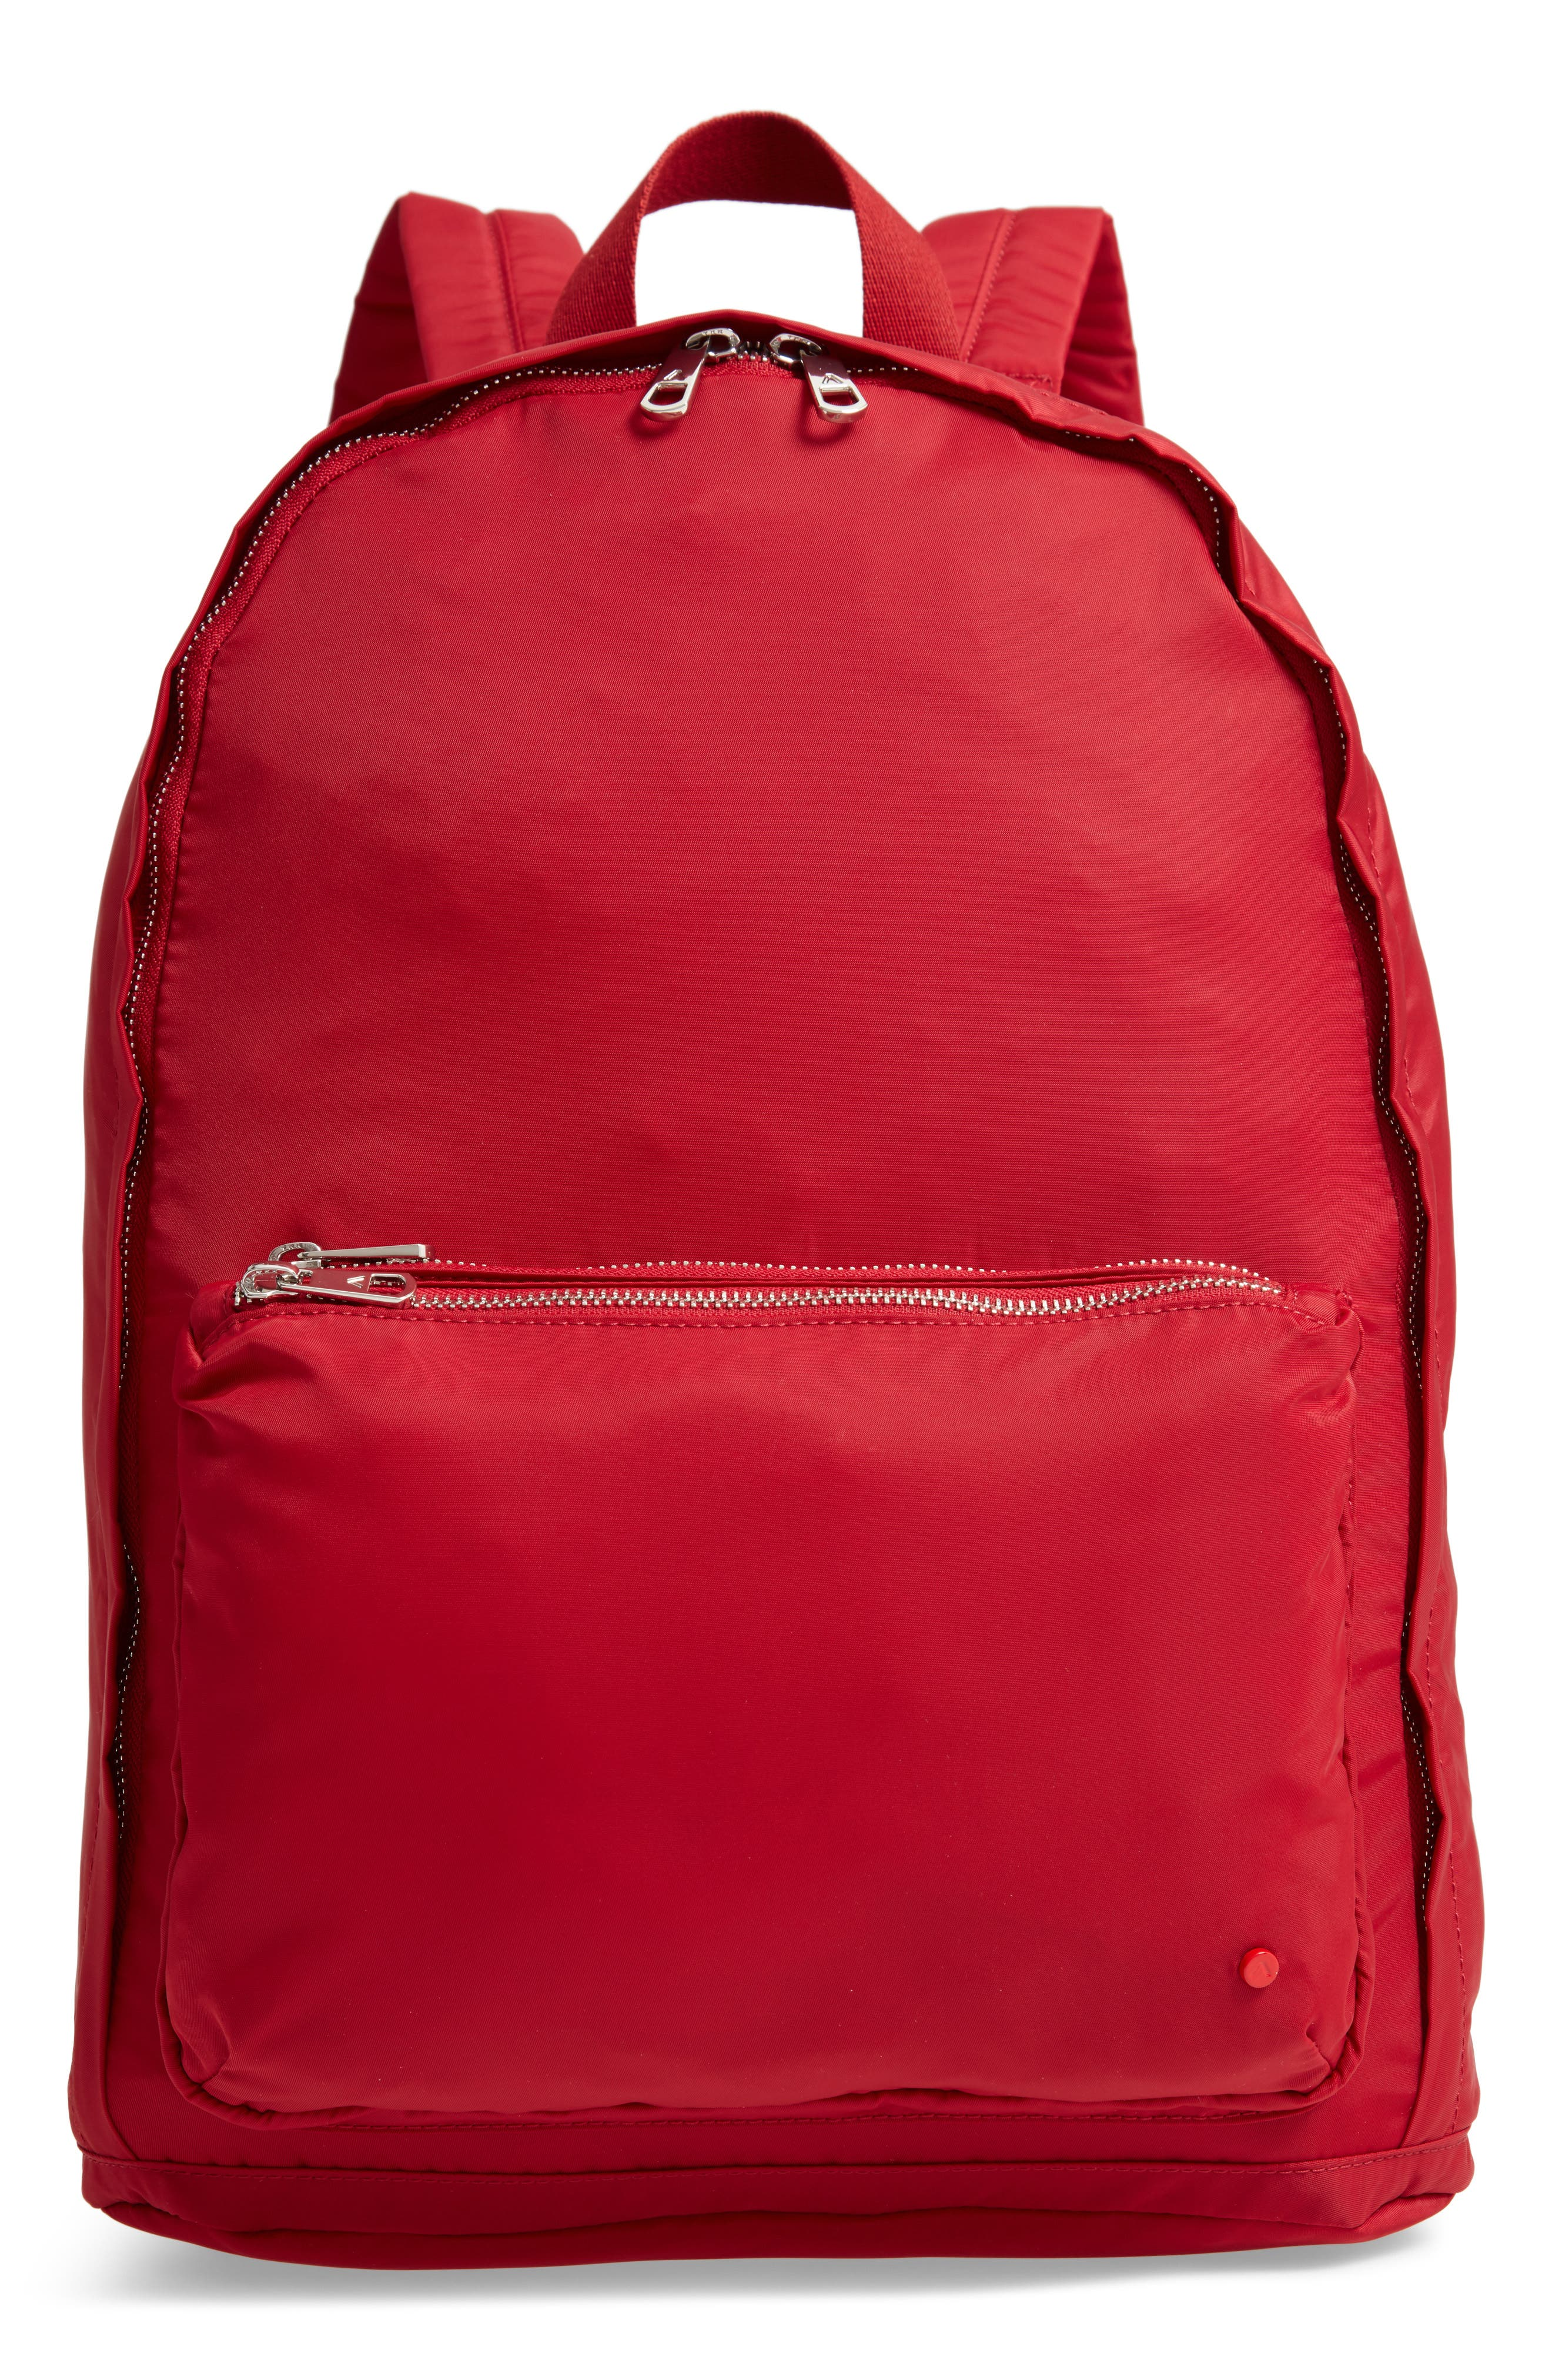 State Bags The Heights Lorimer Backpack - Red